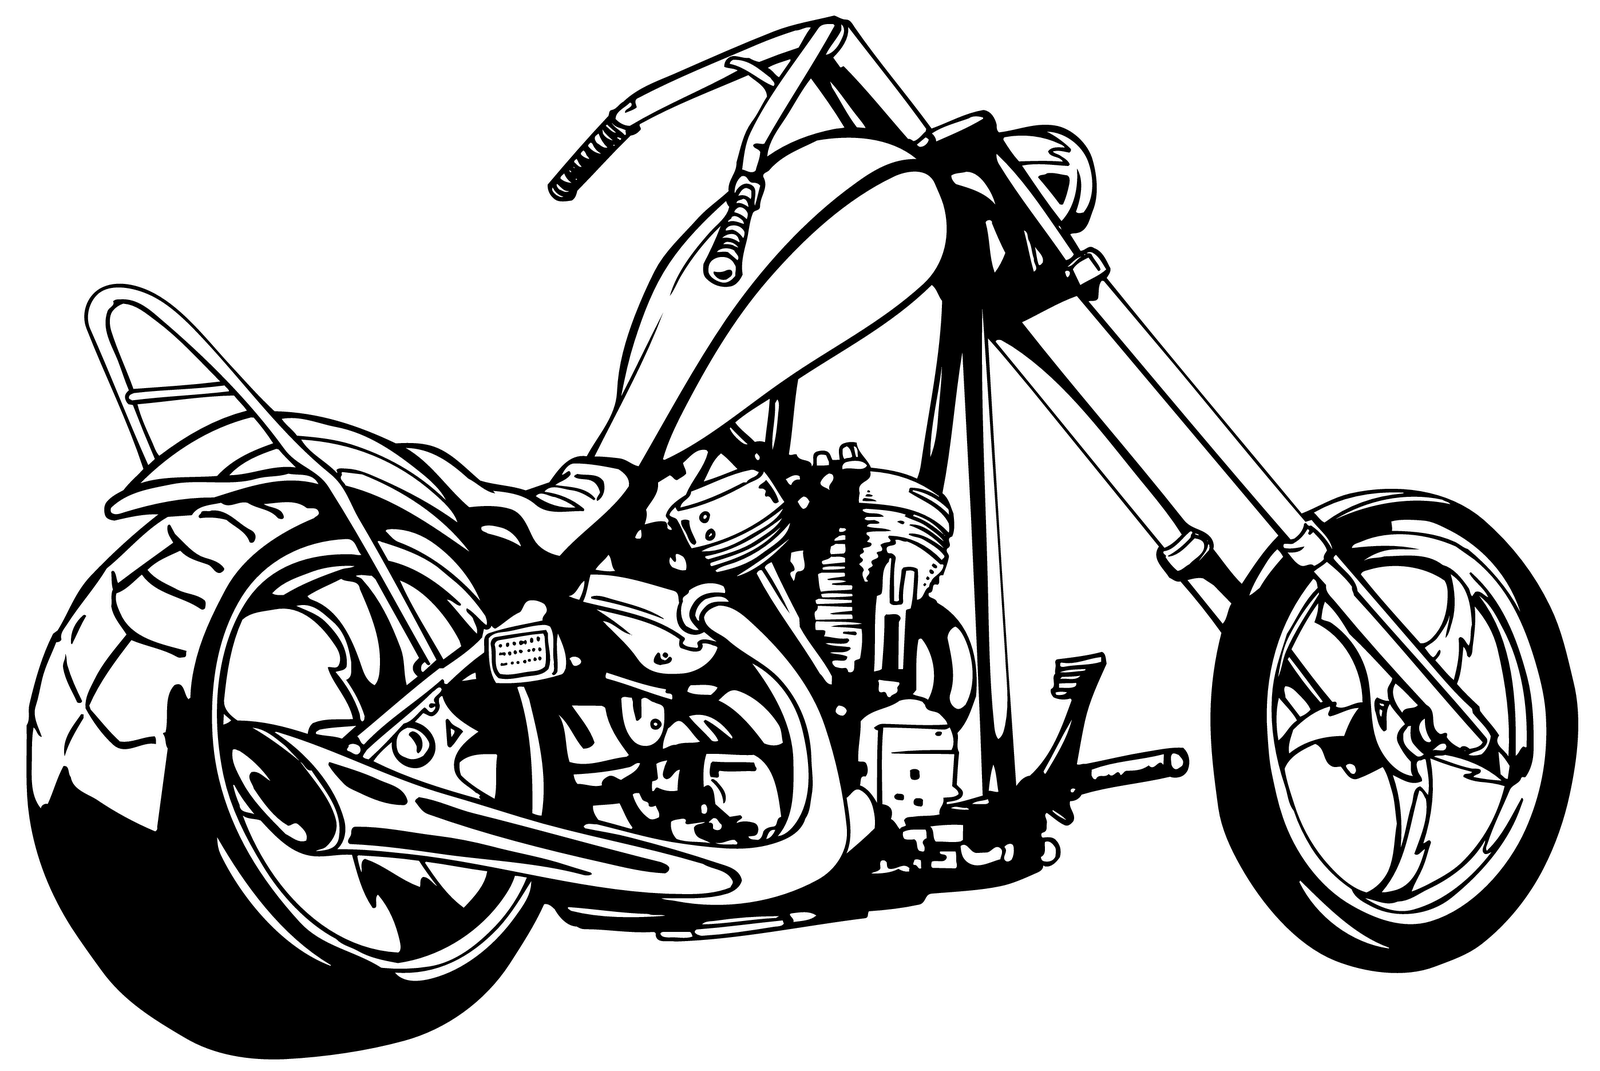 Motos clipart #2, Download drawings